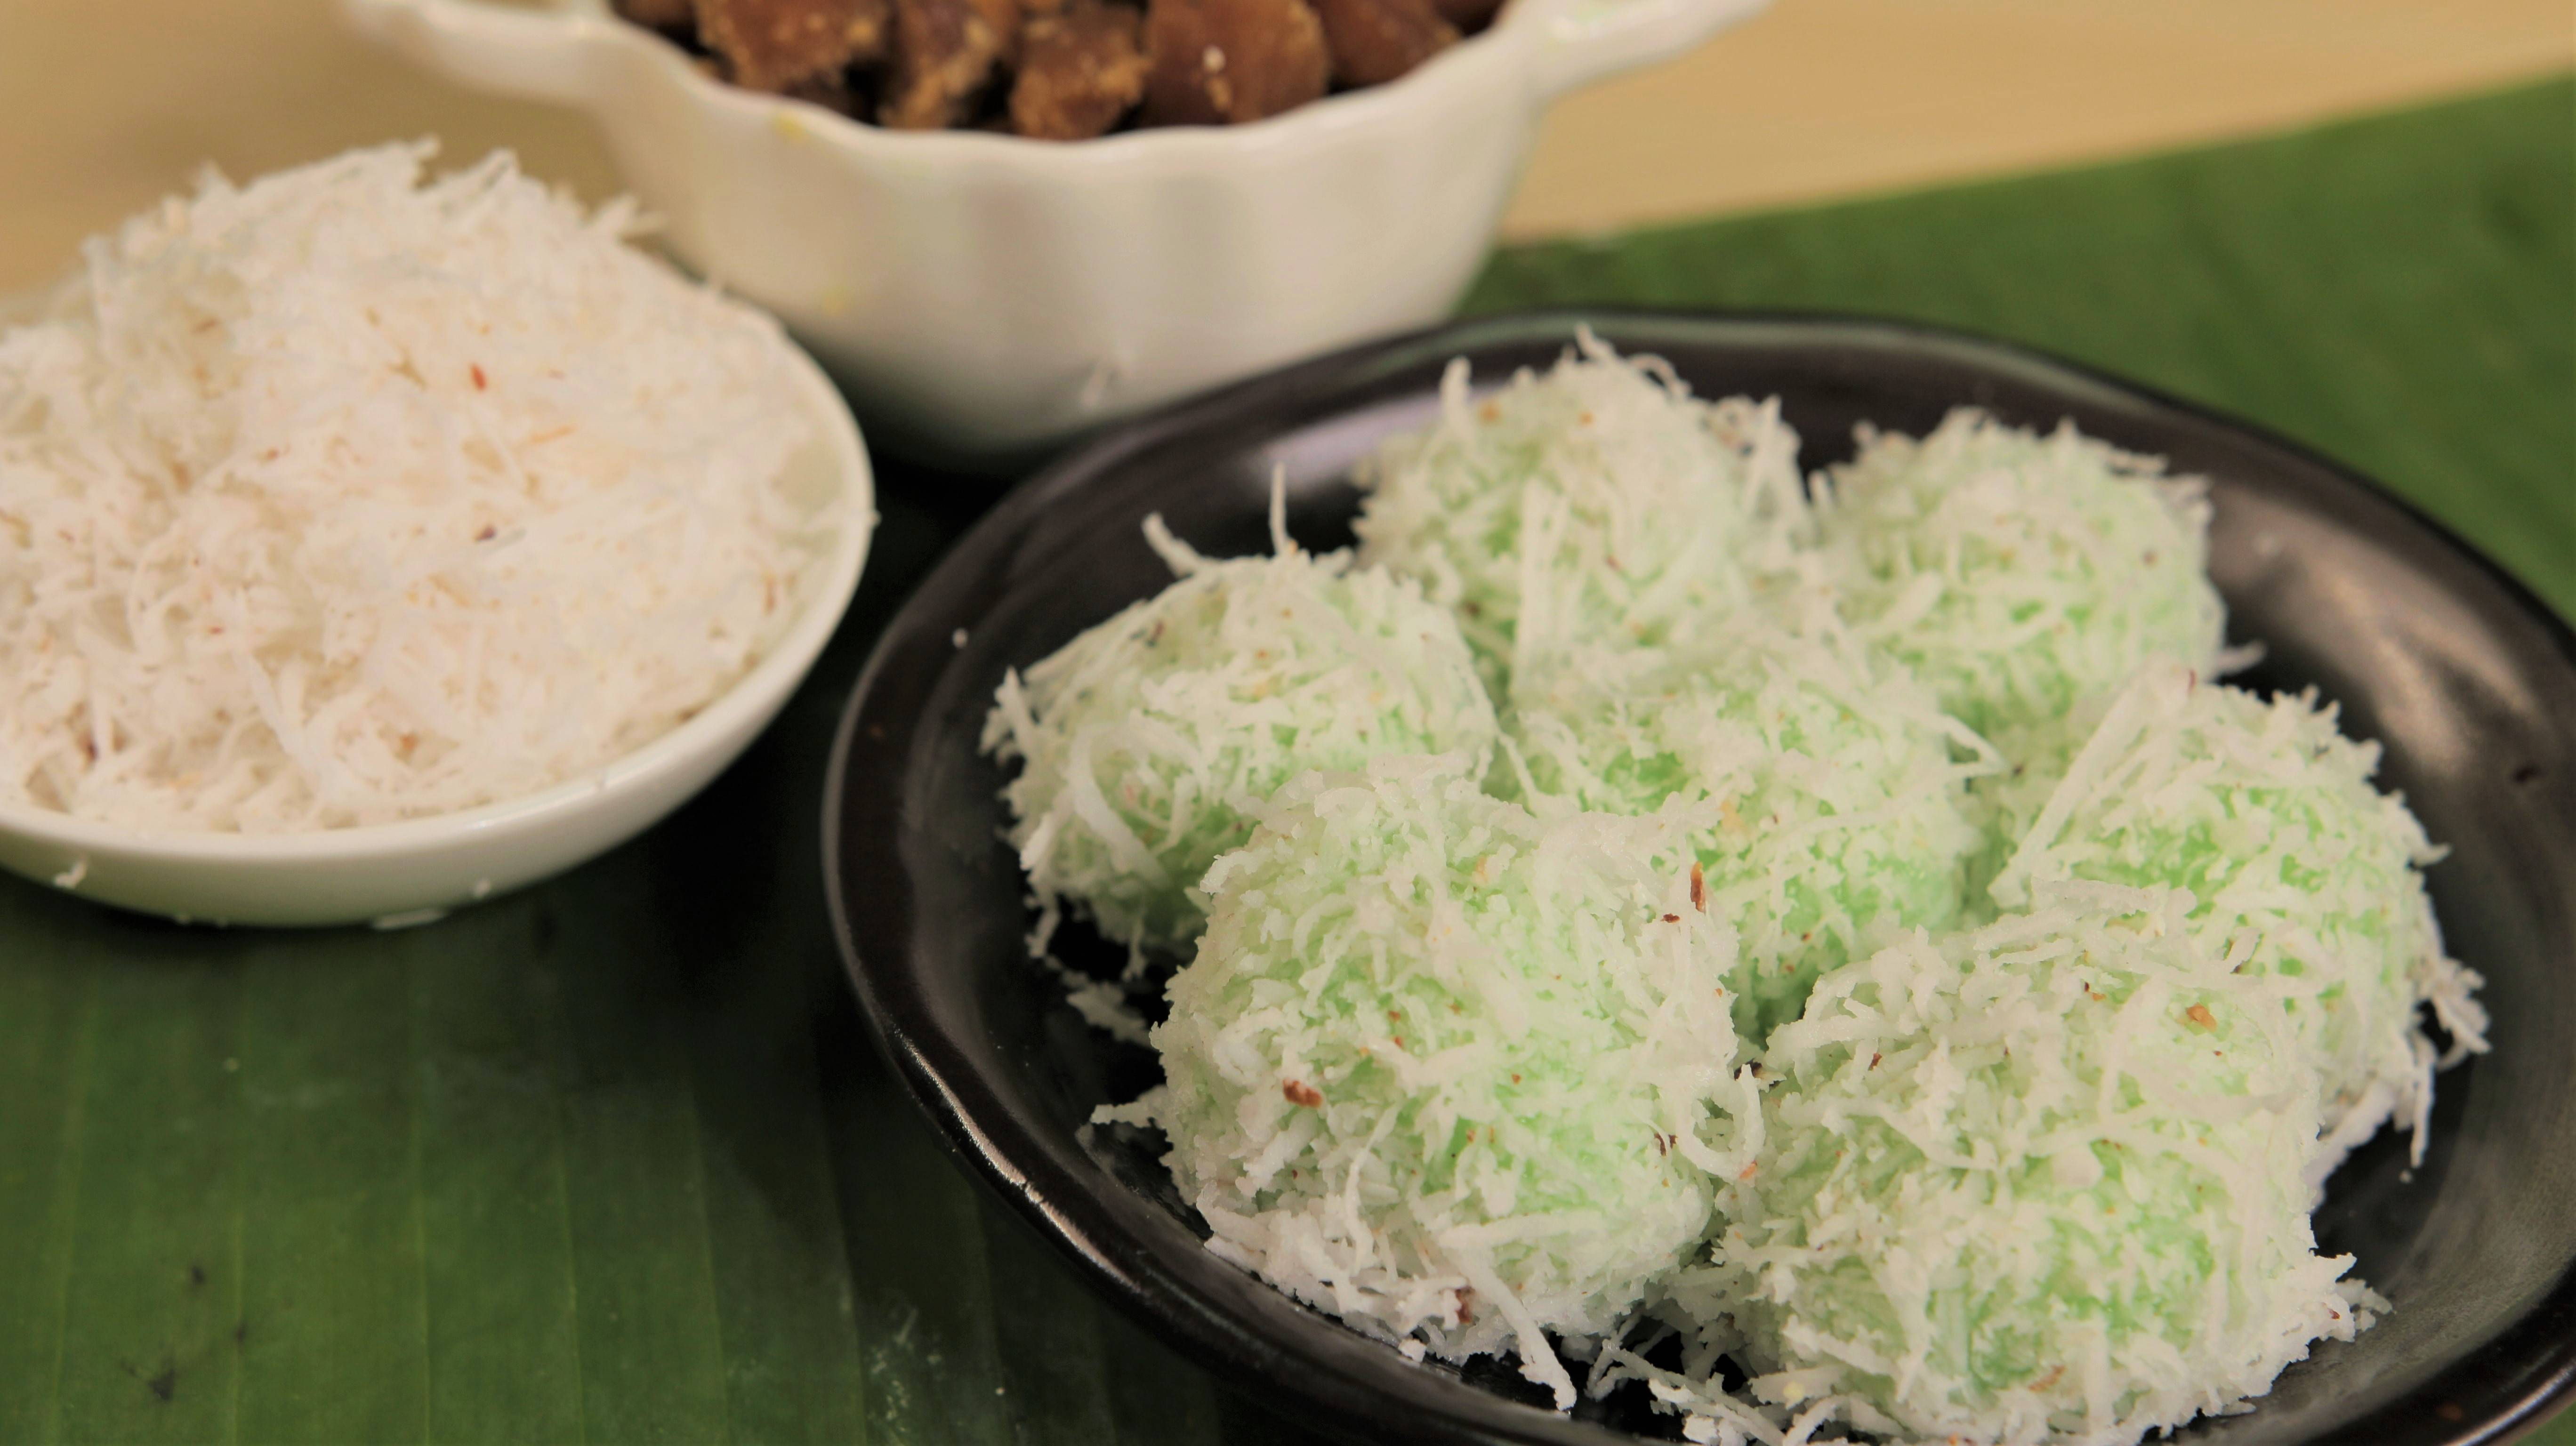 Extracted juices from pandan leaves are used to prepare desserts such as onde-onde.